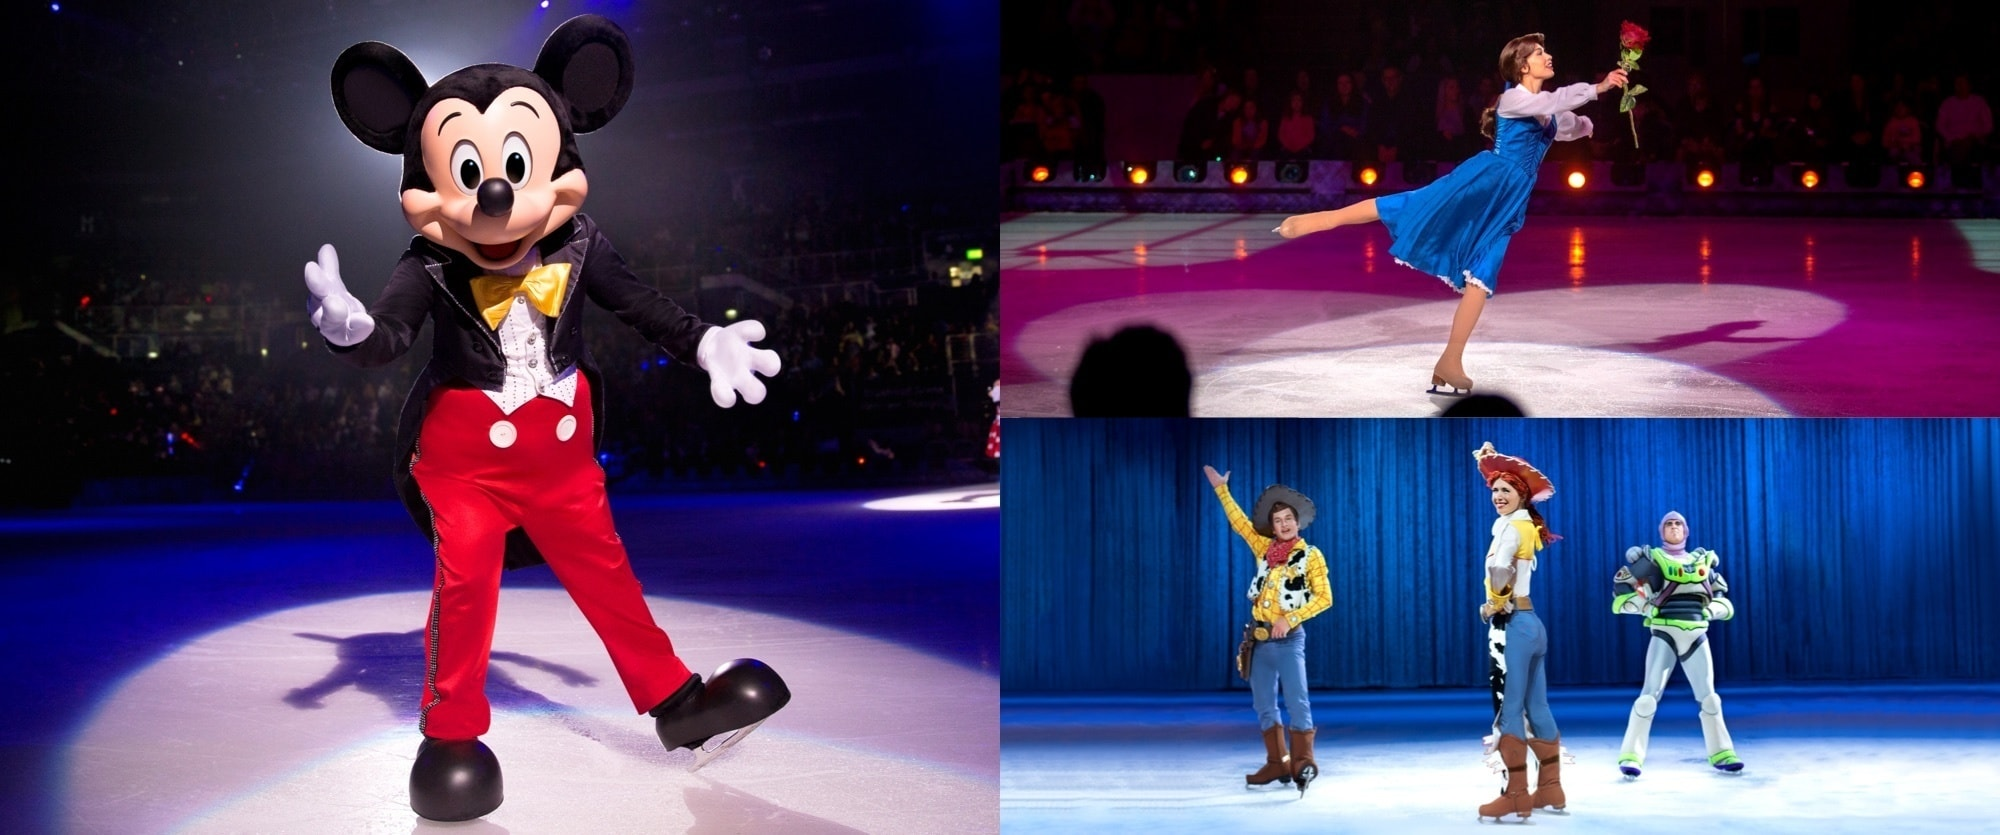 3 images of Mickey Mouse, Belle from Beauty and the Beast and Woody Jessie and Buzz from Toy Story.